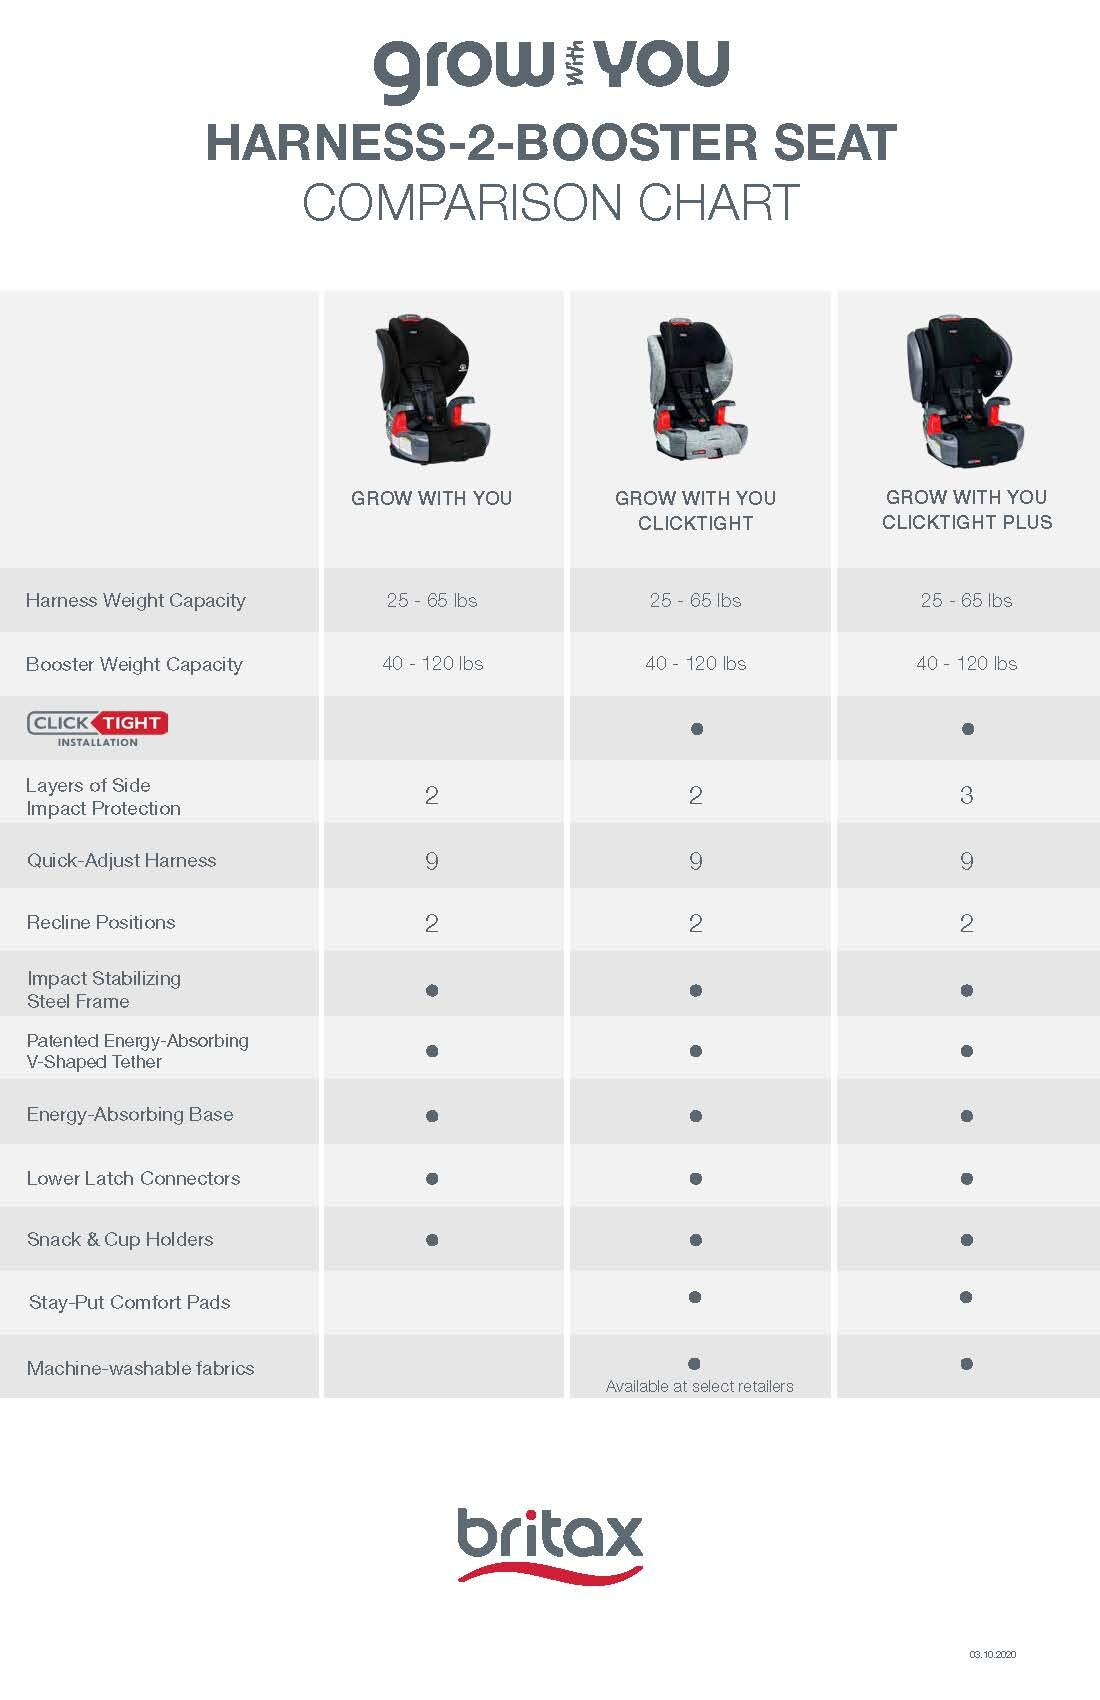 2020 US Harness-2-Booster Seat_Comparison Chart[1654].jpg